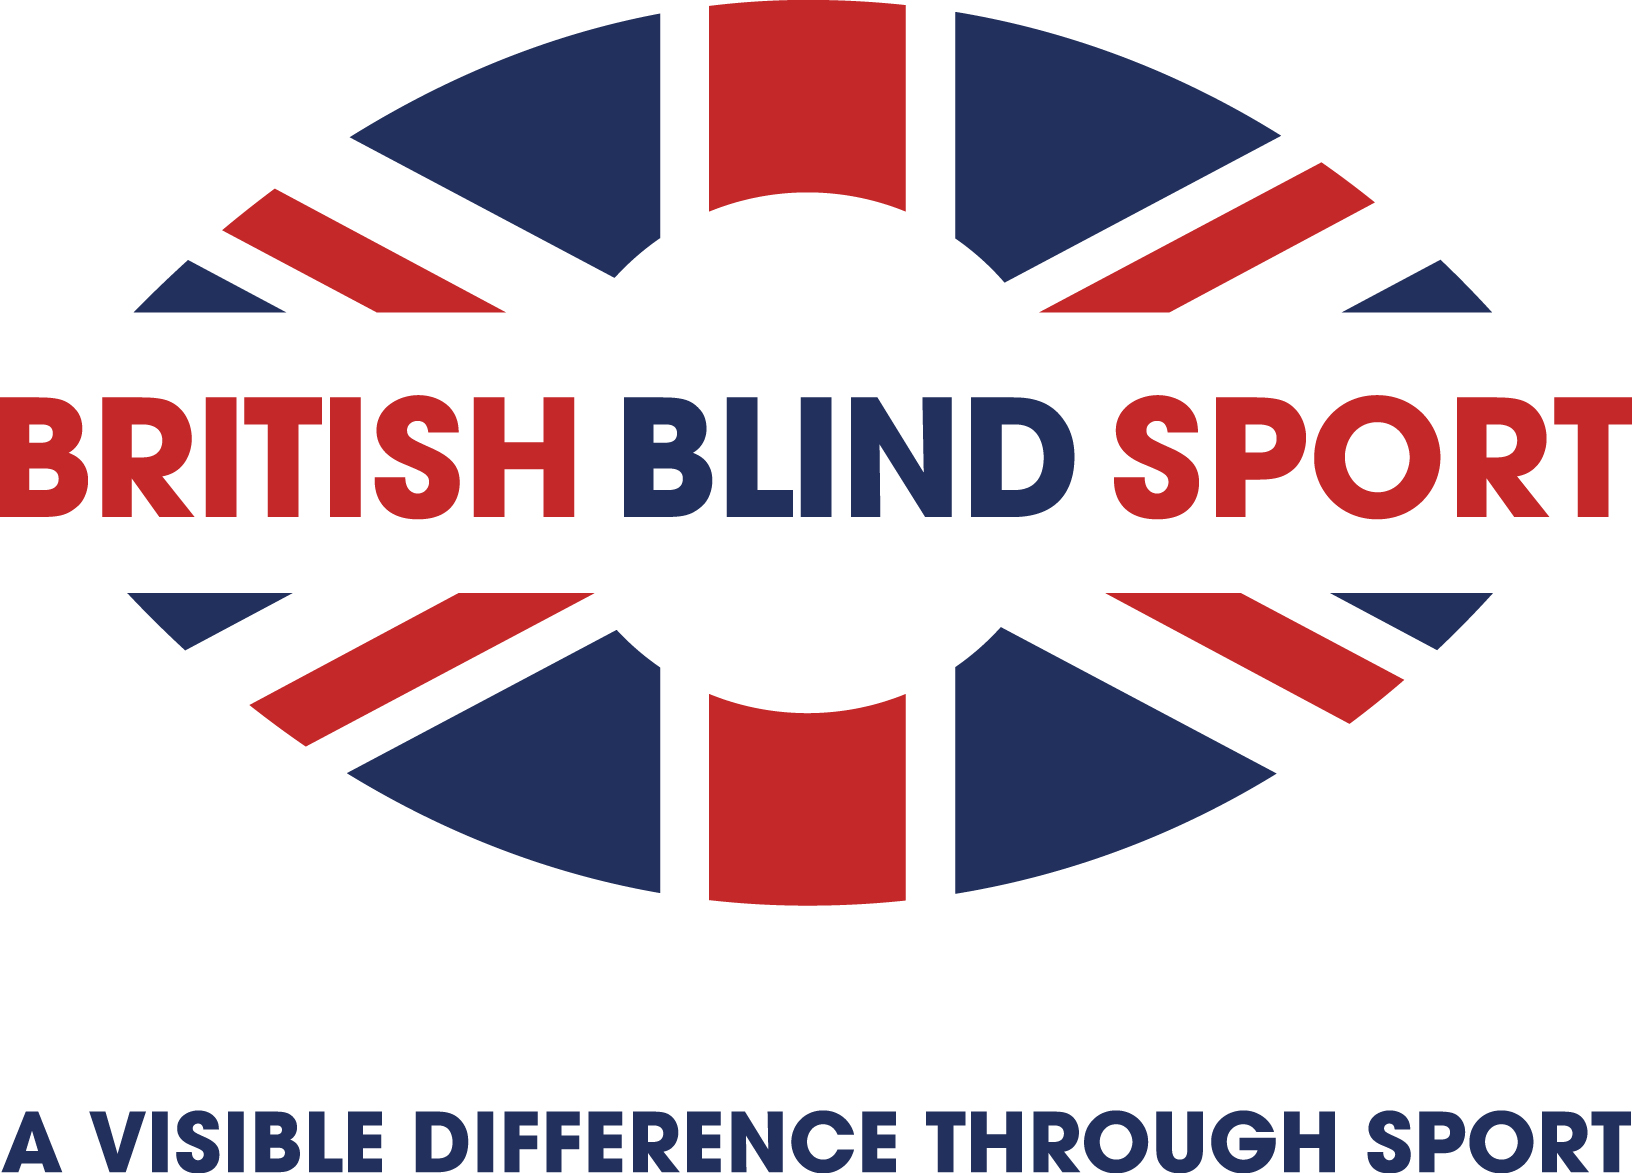 British Blind Sport logo